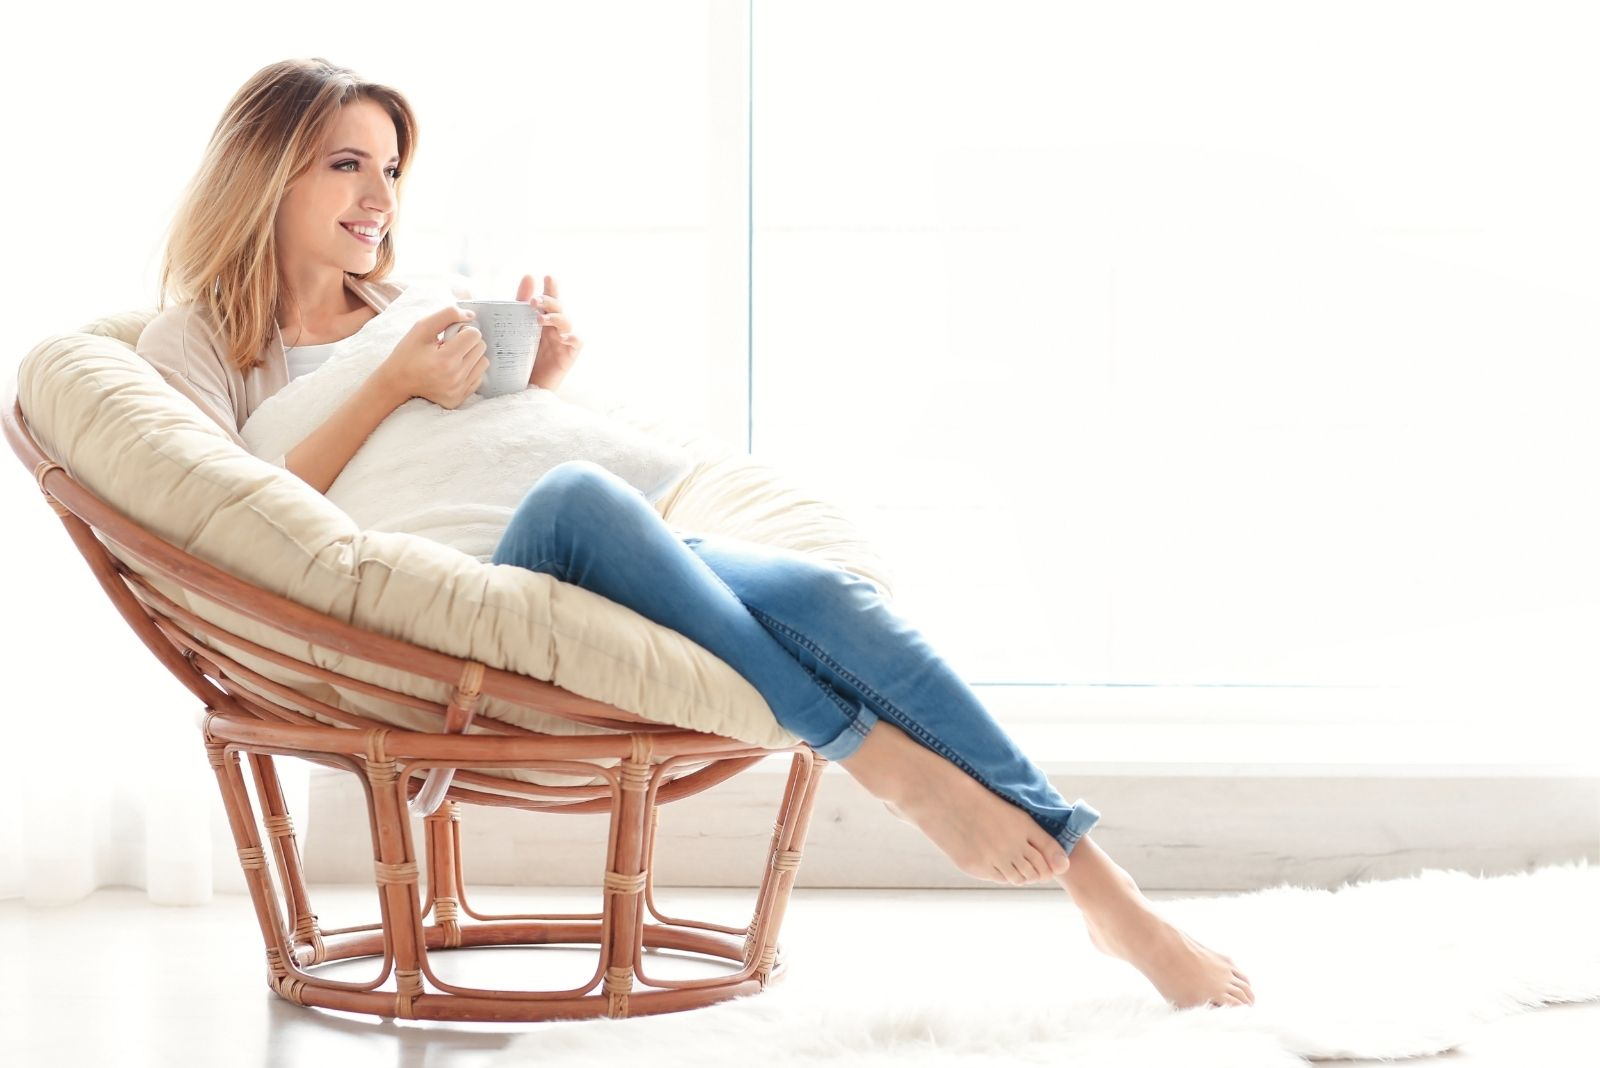 smiling woman relaxing on the comfortable chair drinking coffee near the white curtains